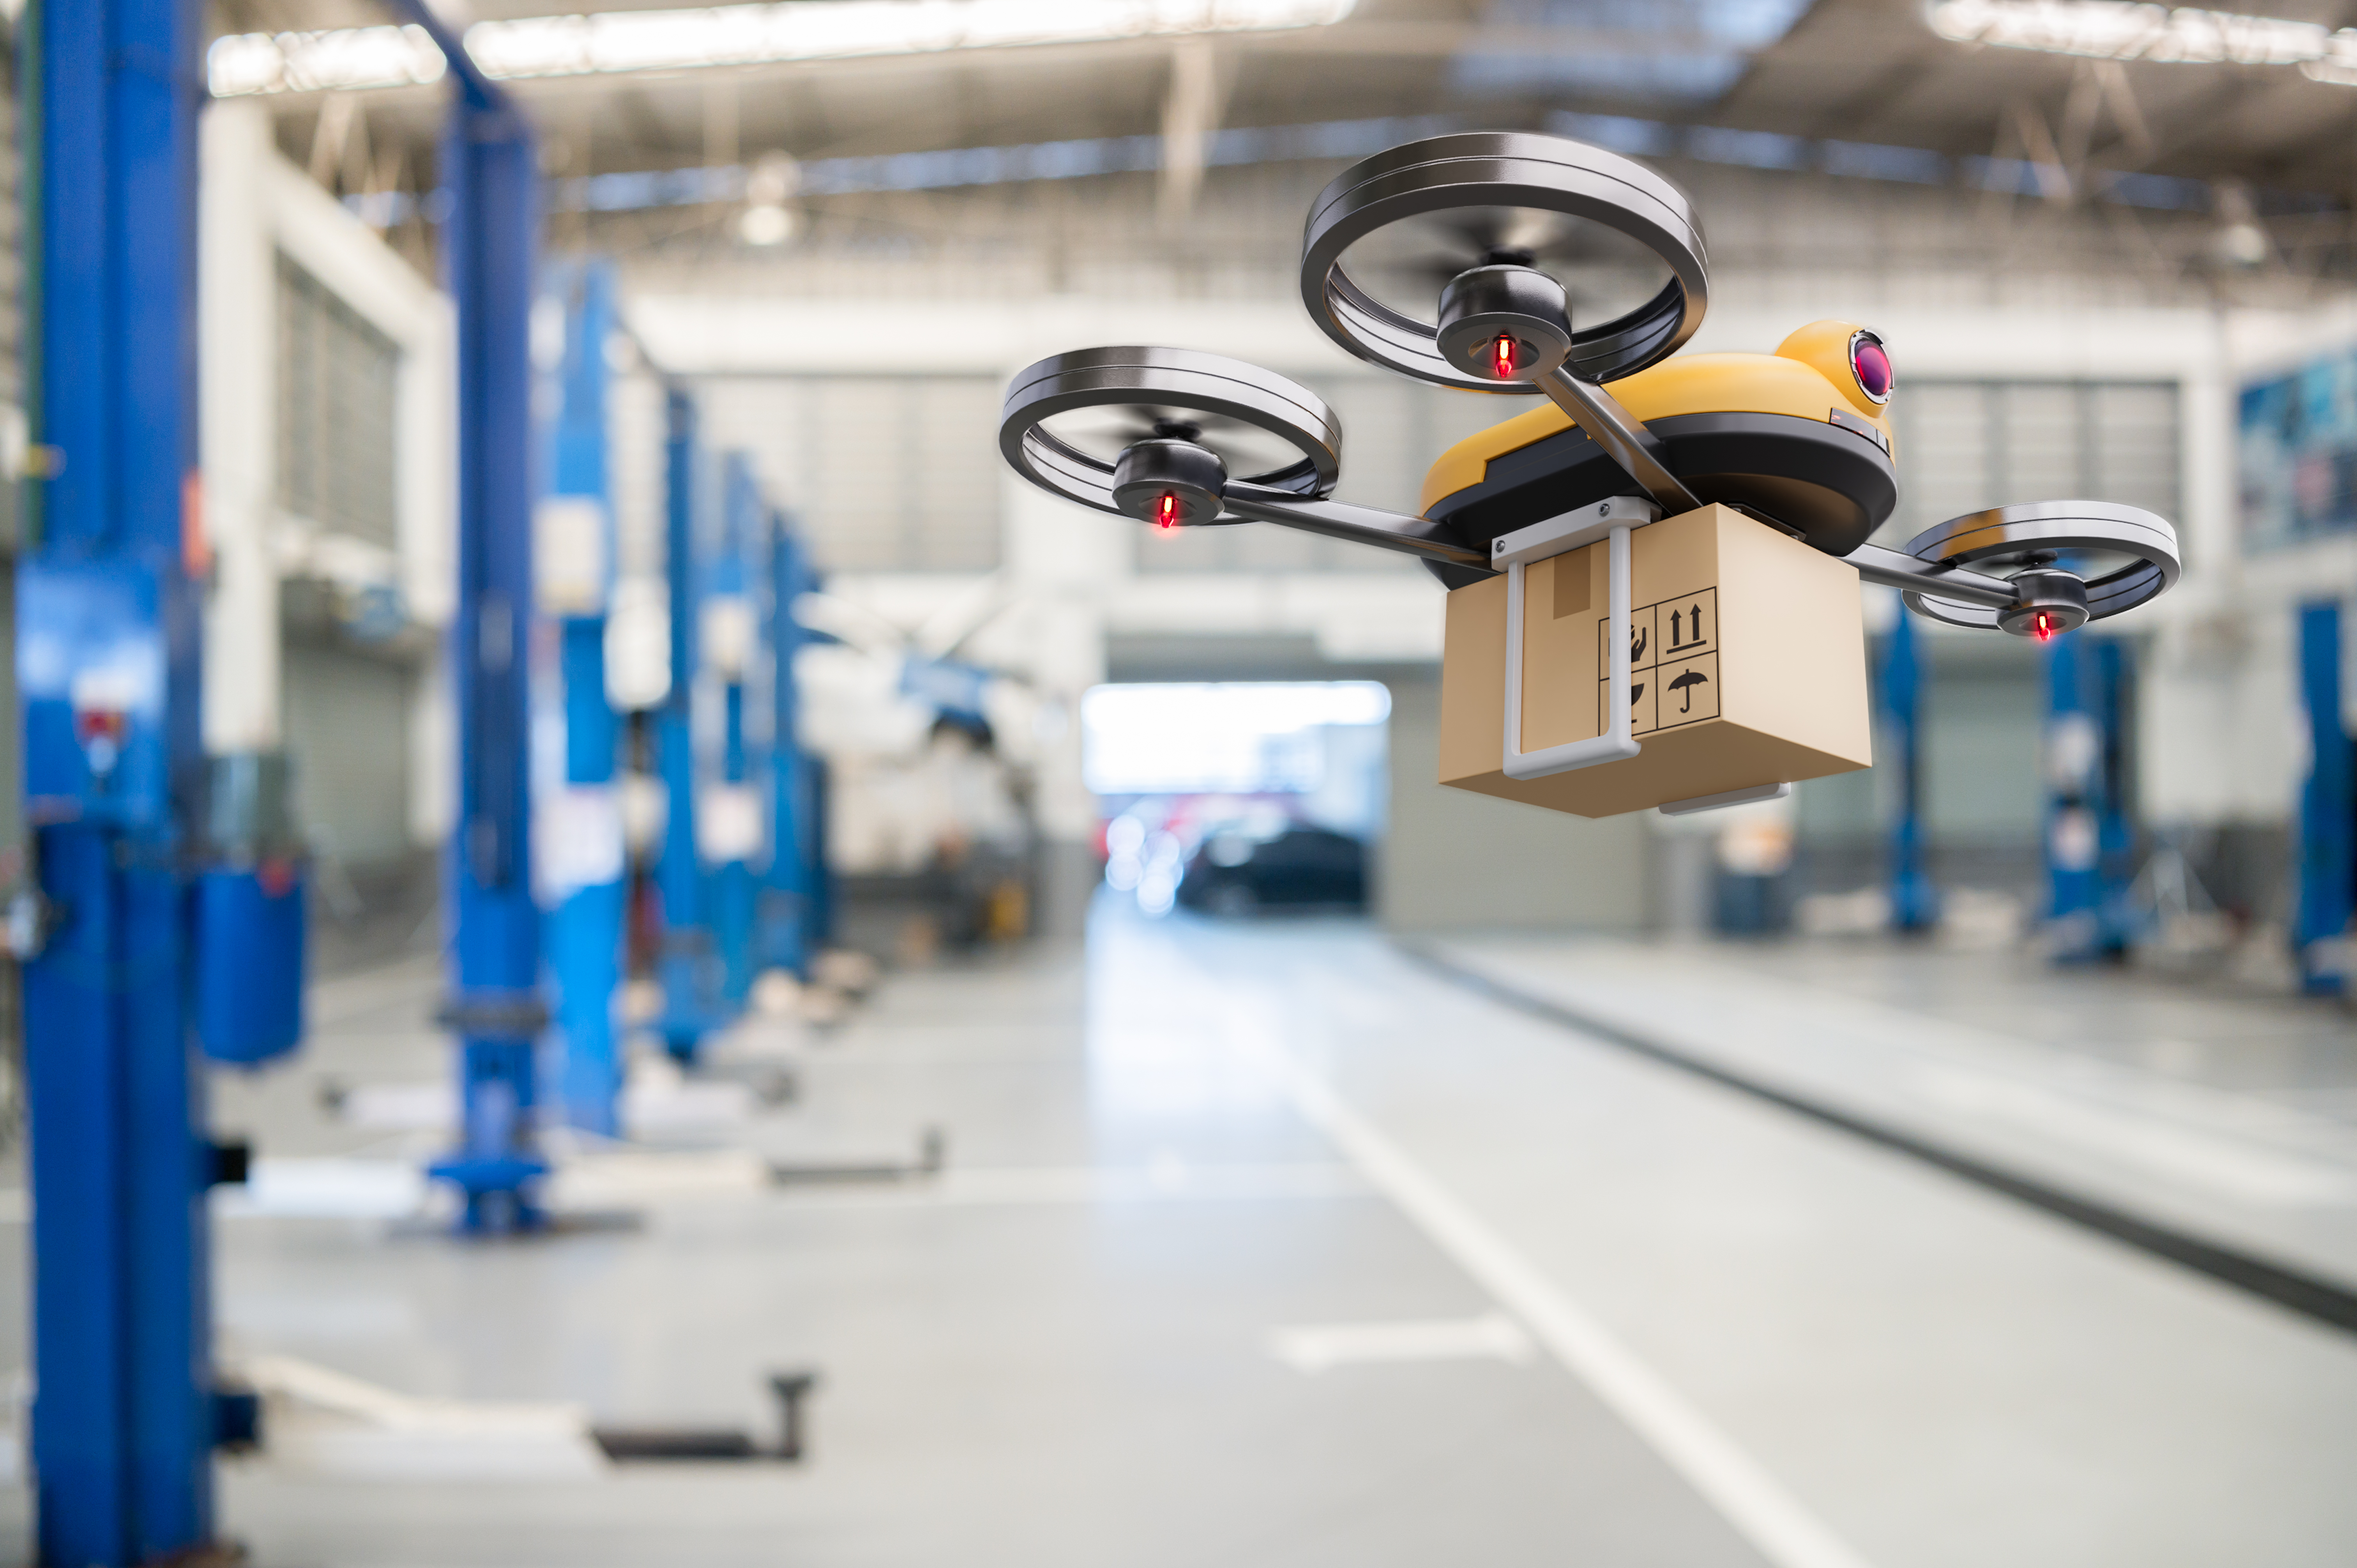 market research drone delivery warehouse